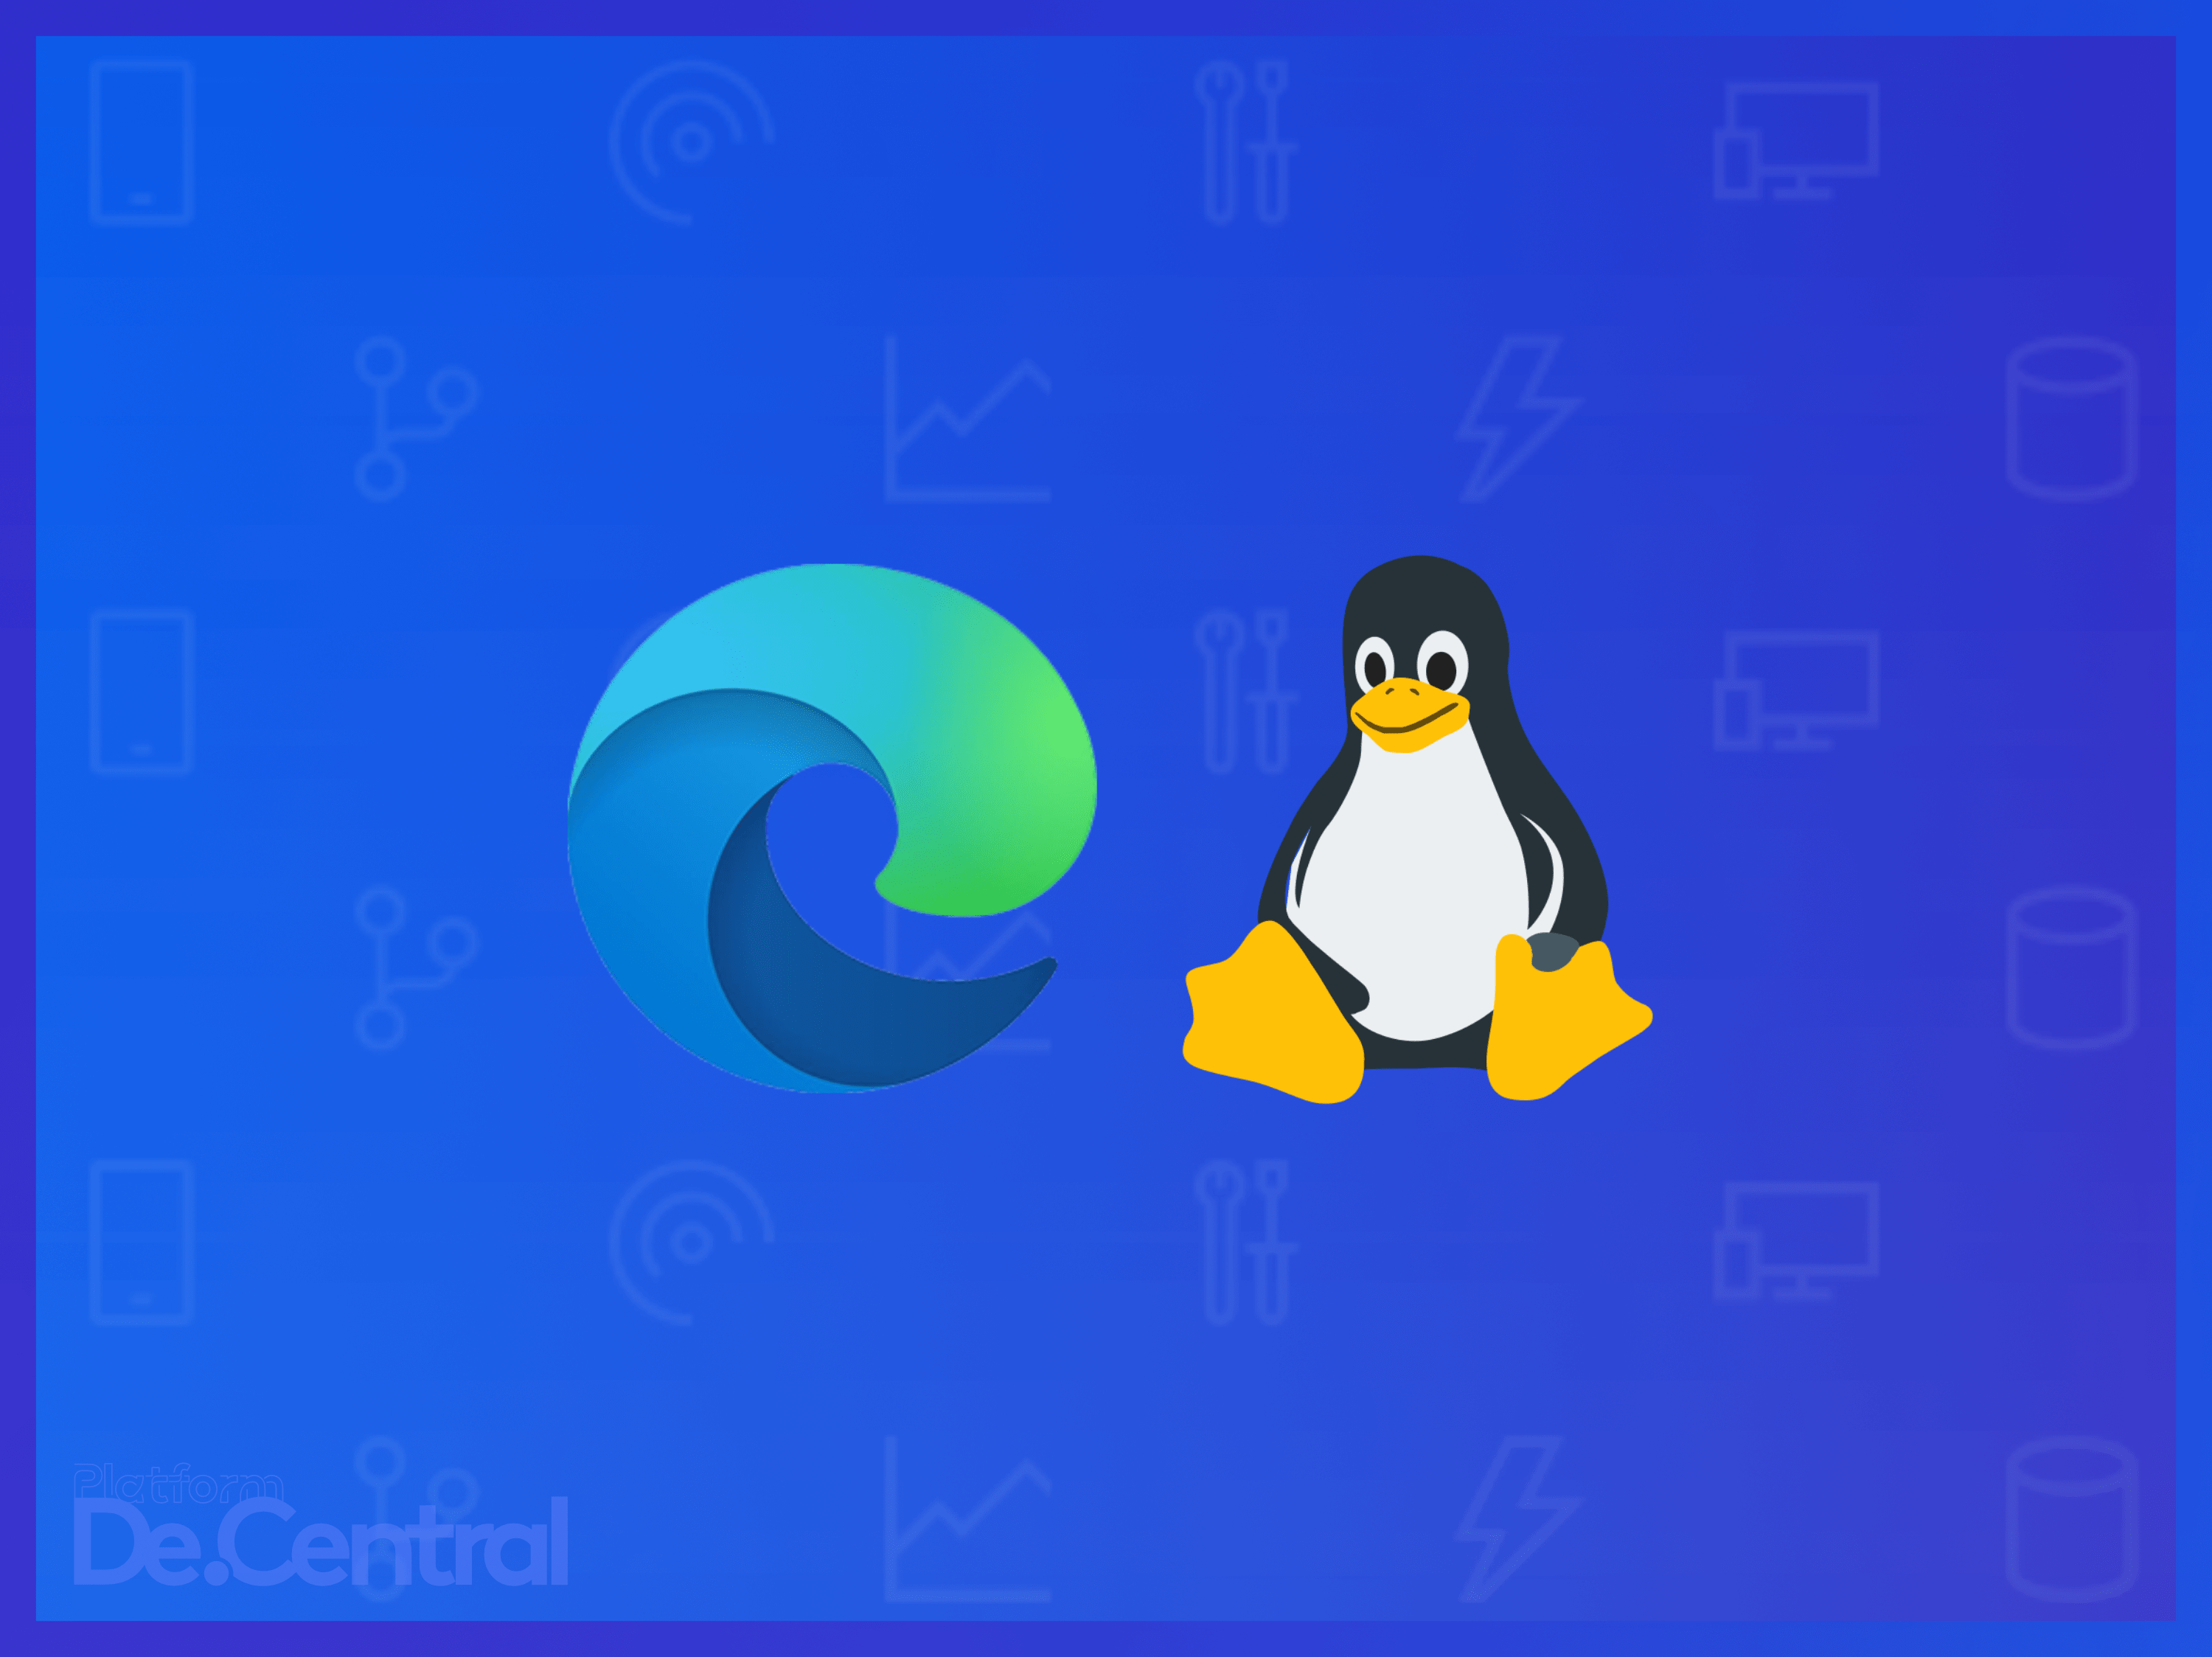 We finally get a glimpse of Edge for Linux